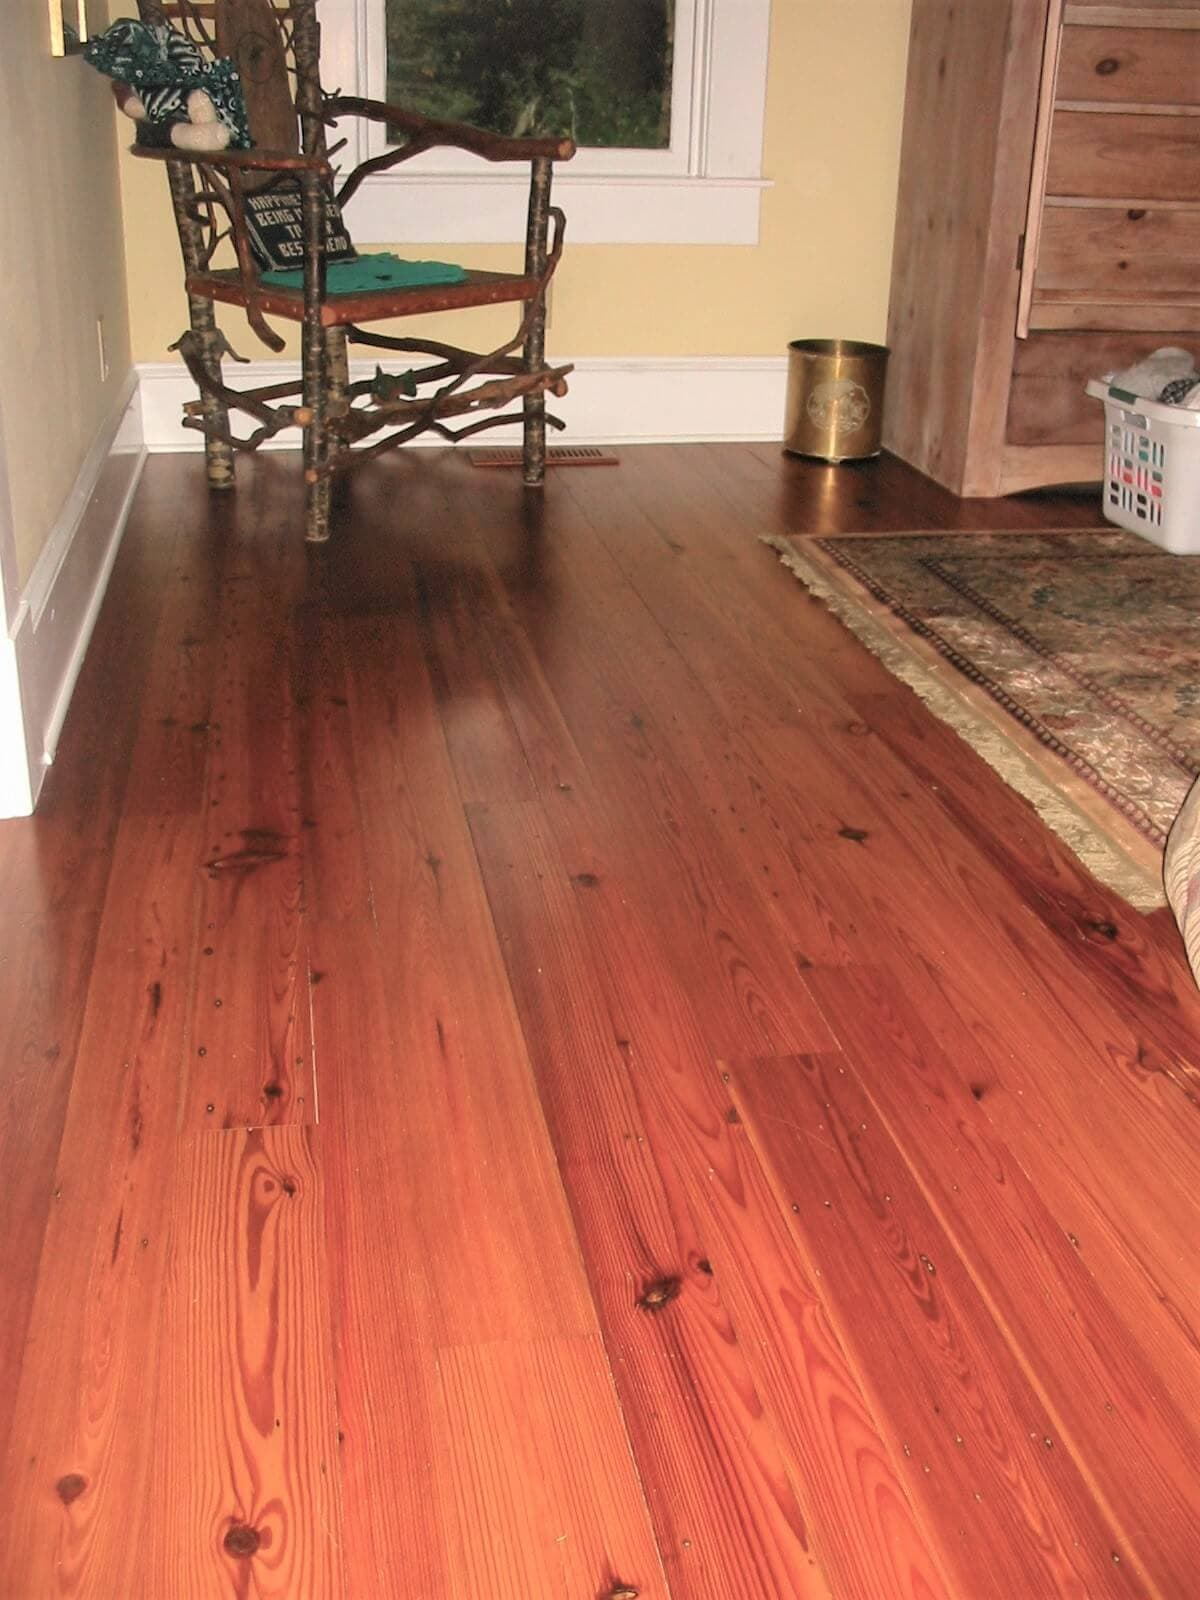 heart pine plain sawn floor near a rug and chair